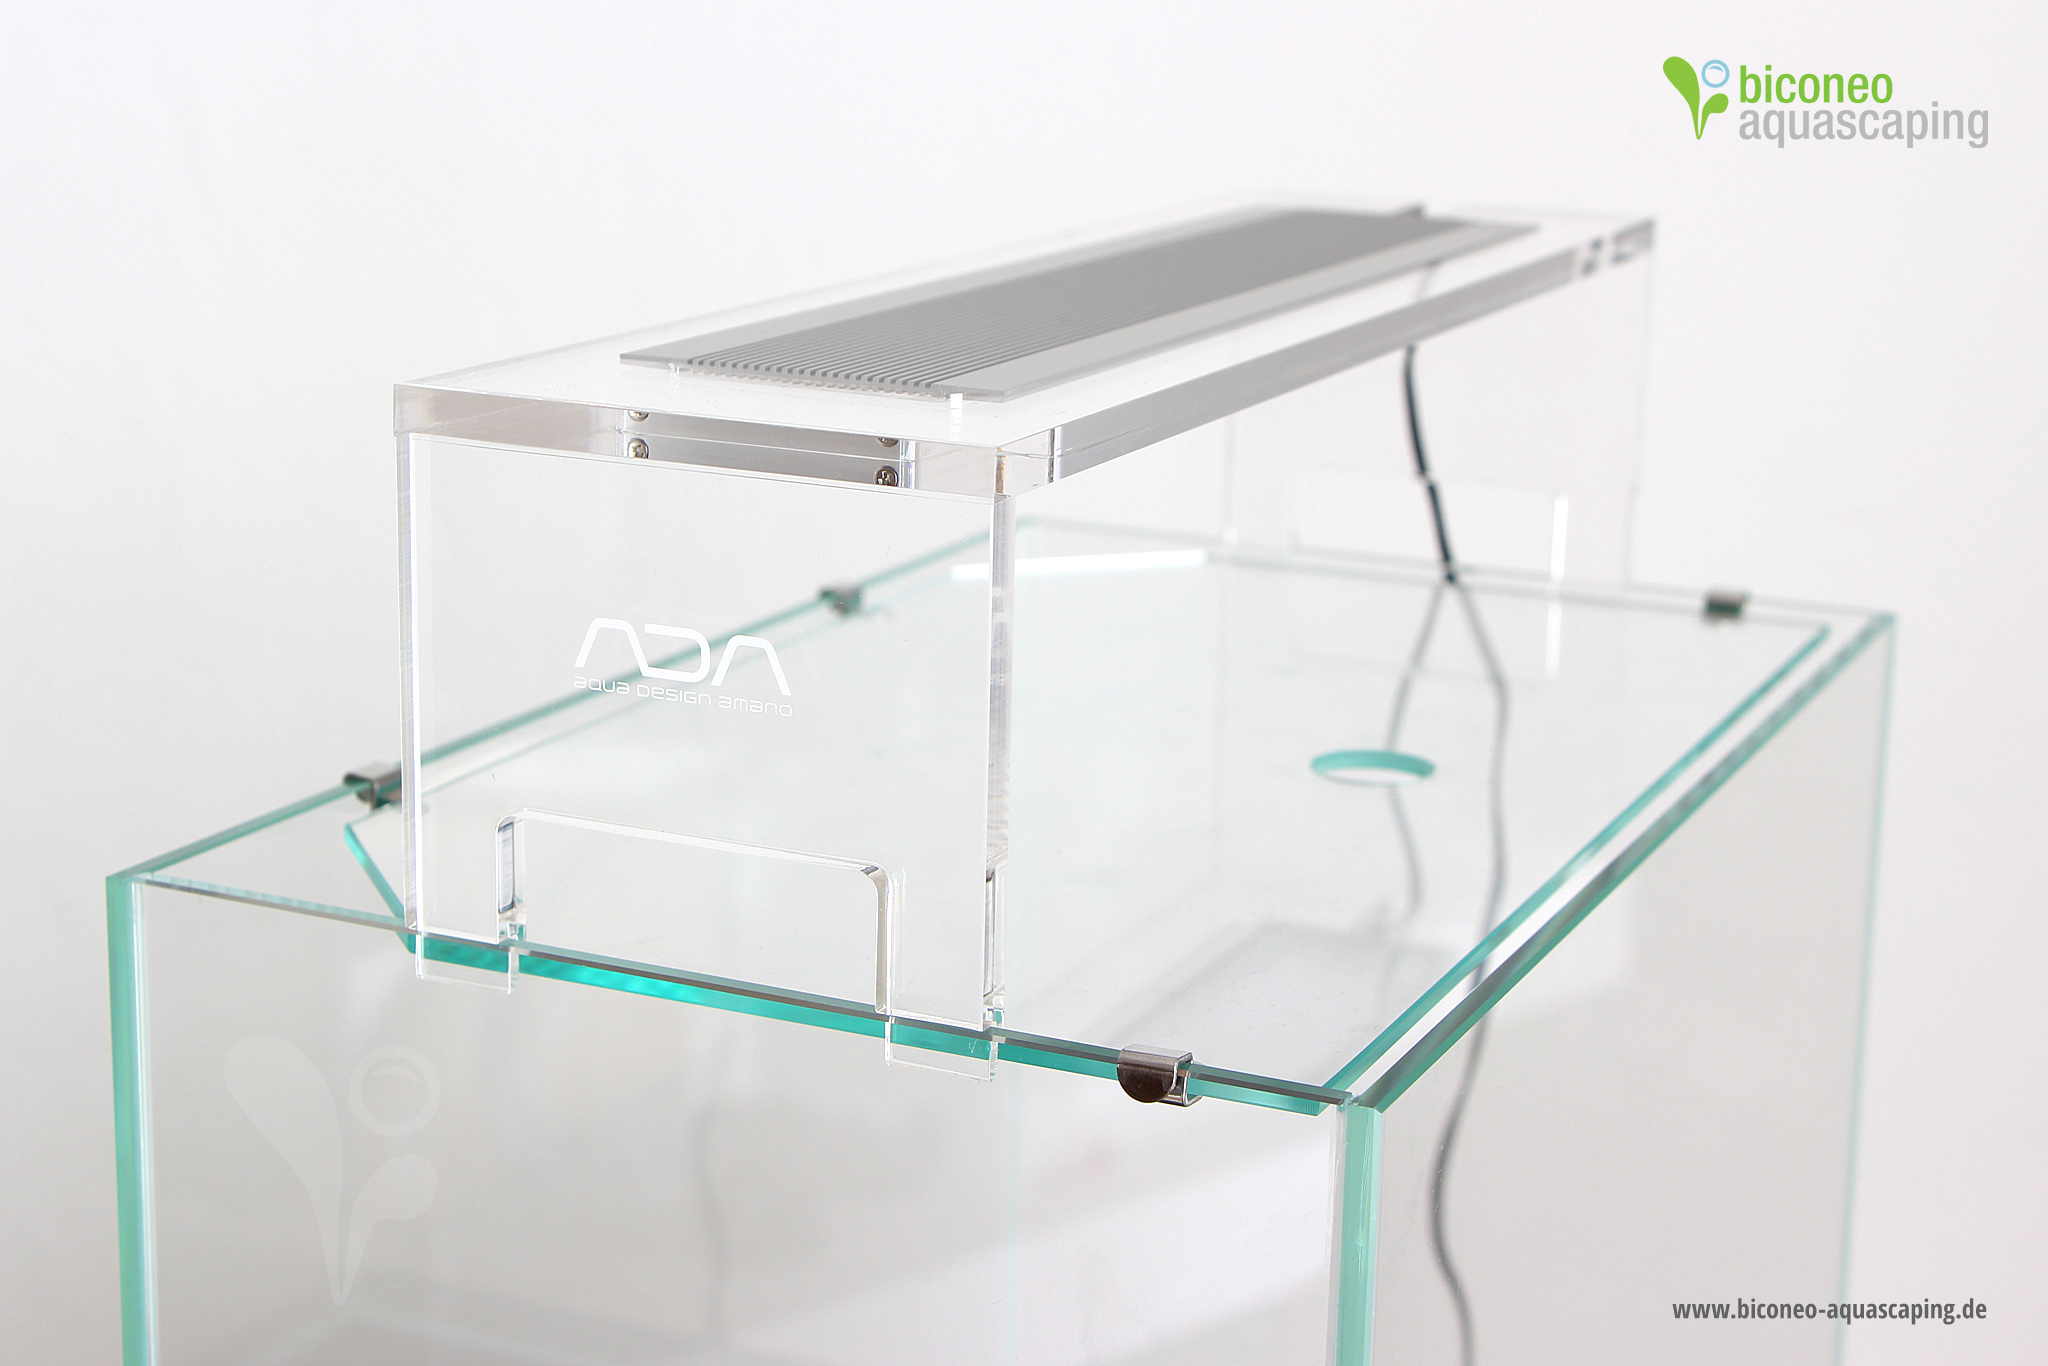 aquasky 361 die perfekte led beleuchtung f r ihr nano aquarium. Black Bedroom Furniture Sets. Home Design Ideas